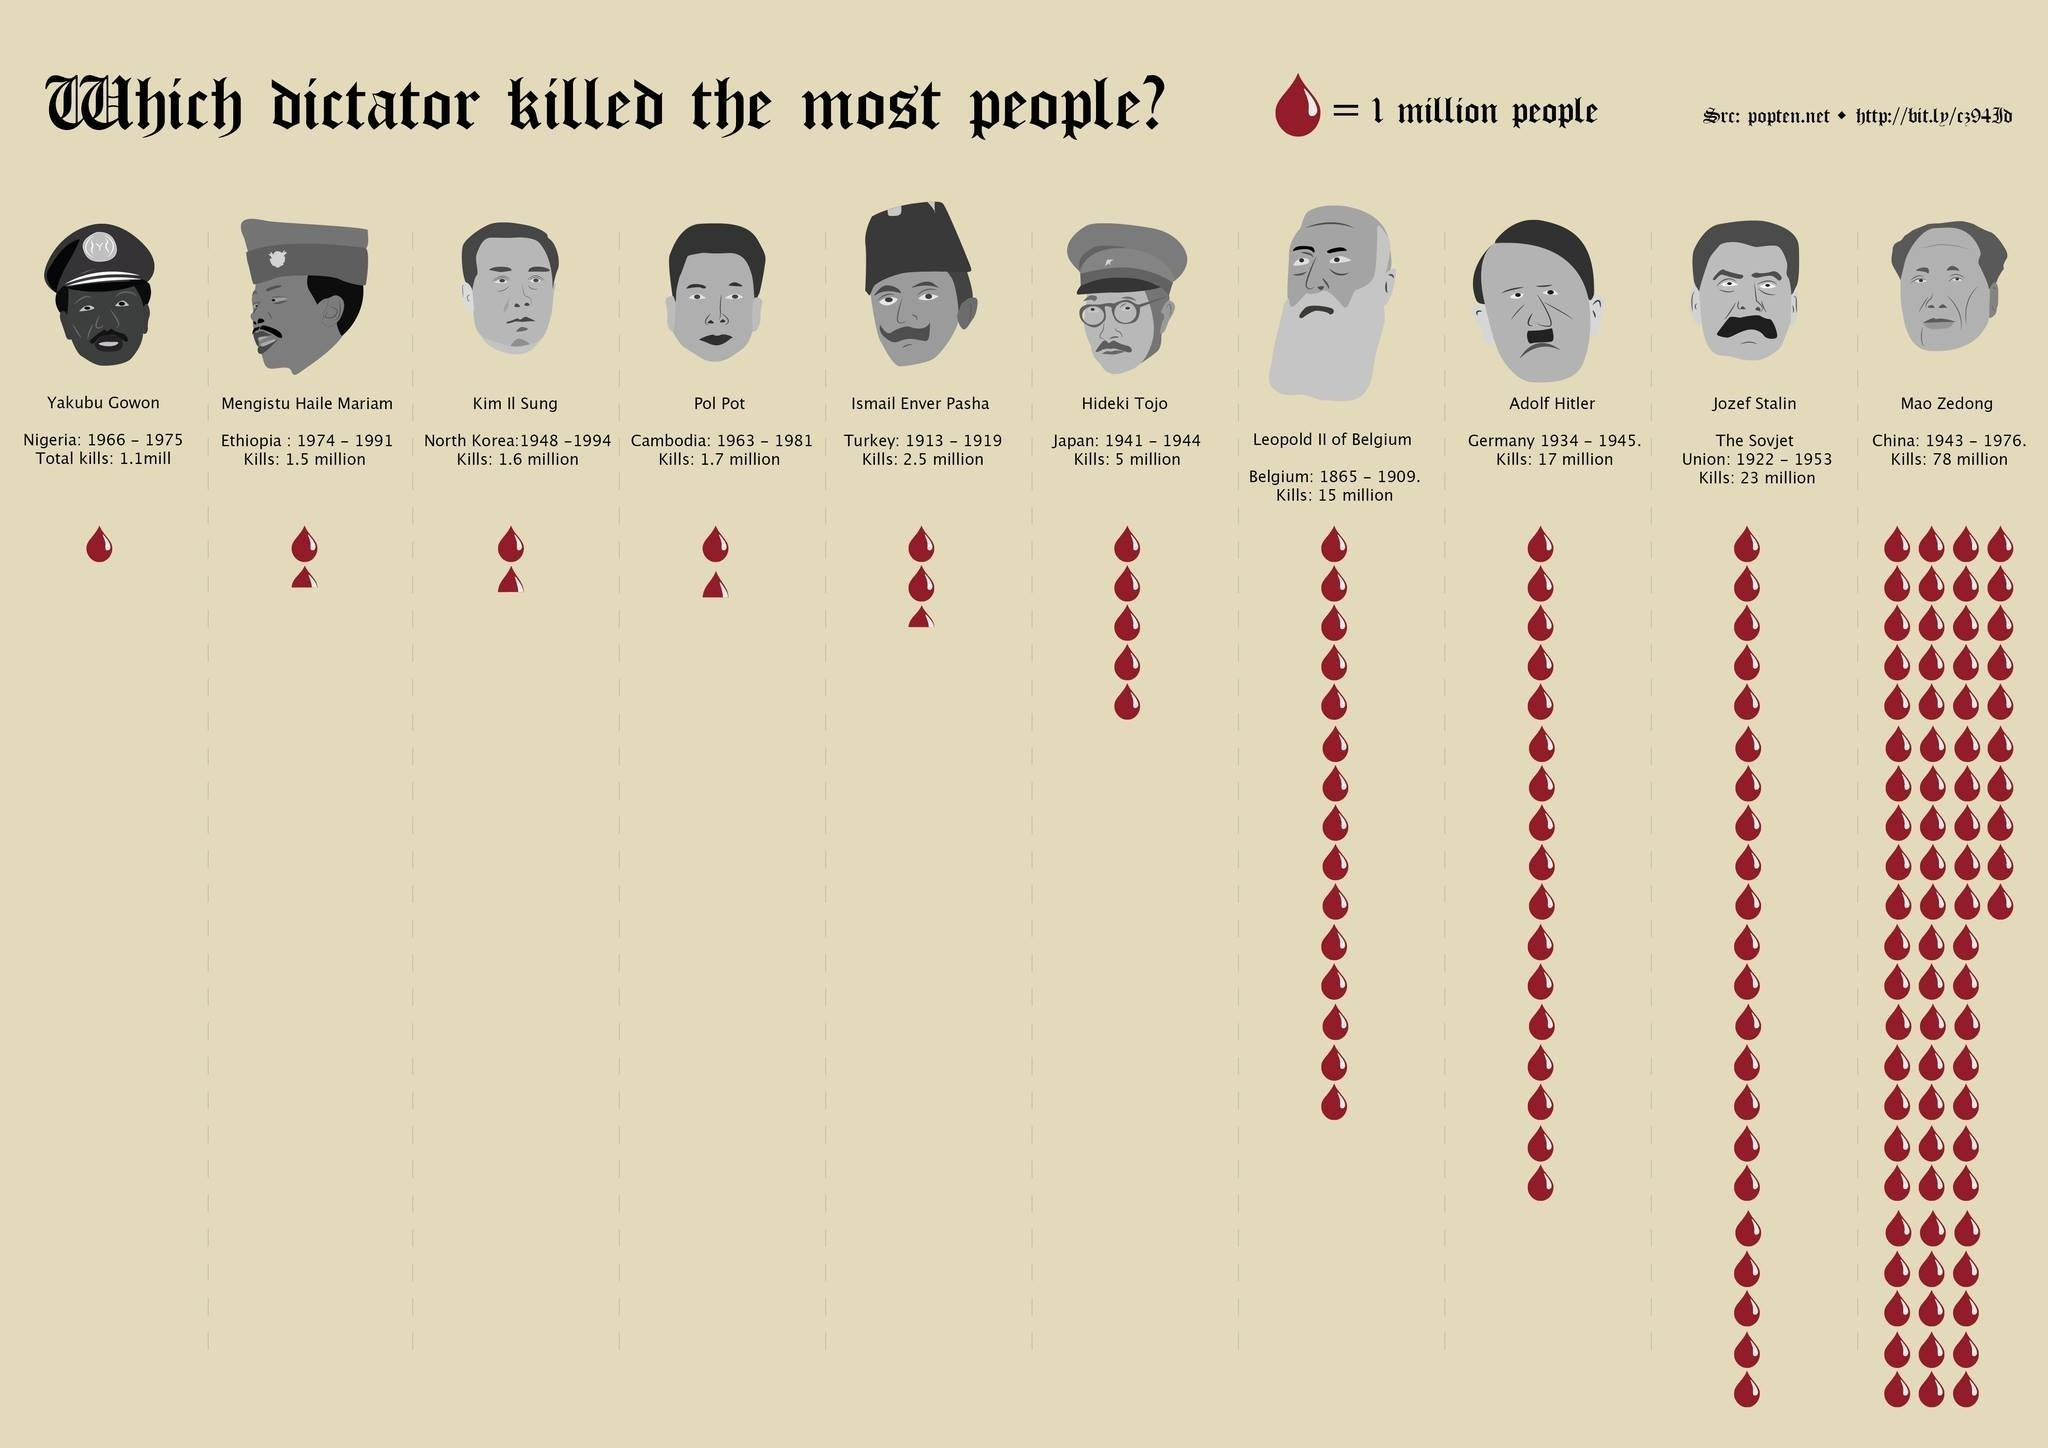 Since Hitler Lost The War, We Can Only Say He Allegedly Killed The Amount Of People Some Claim He Killed.